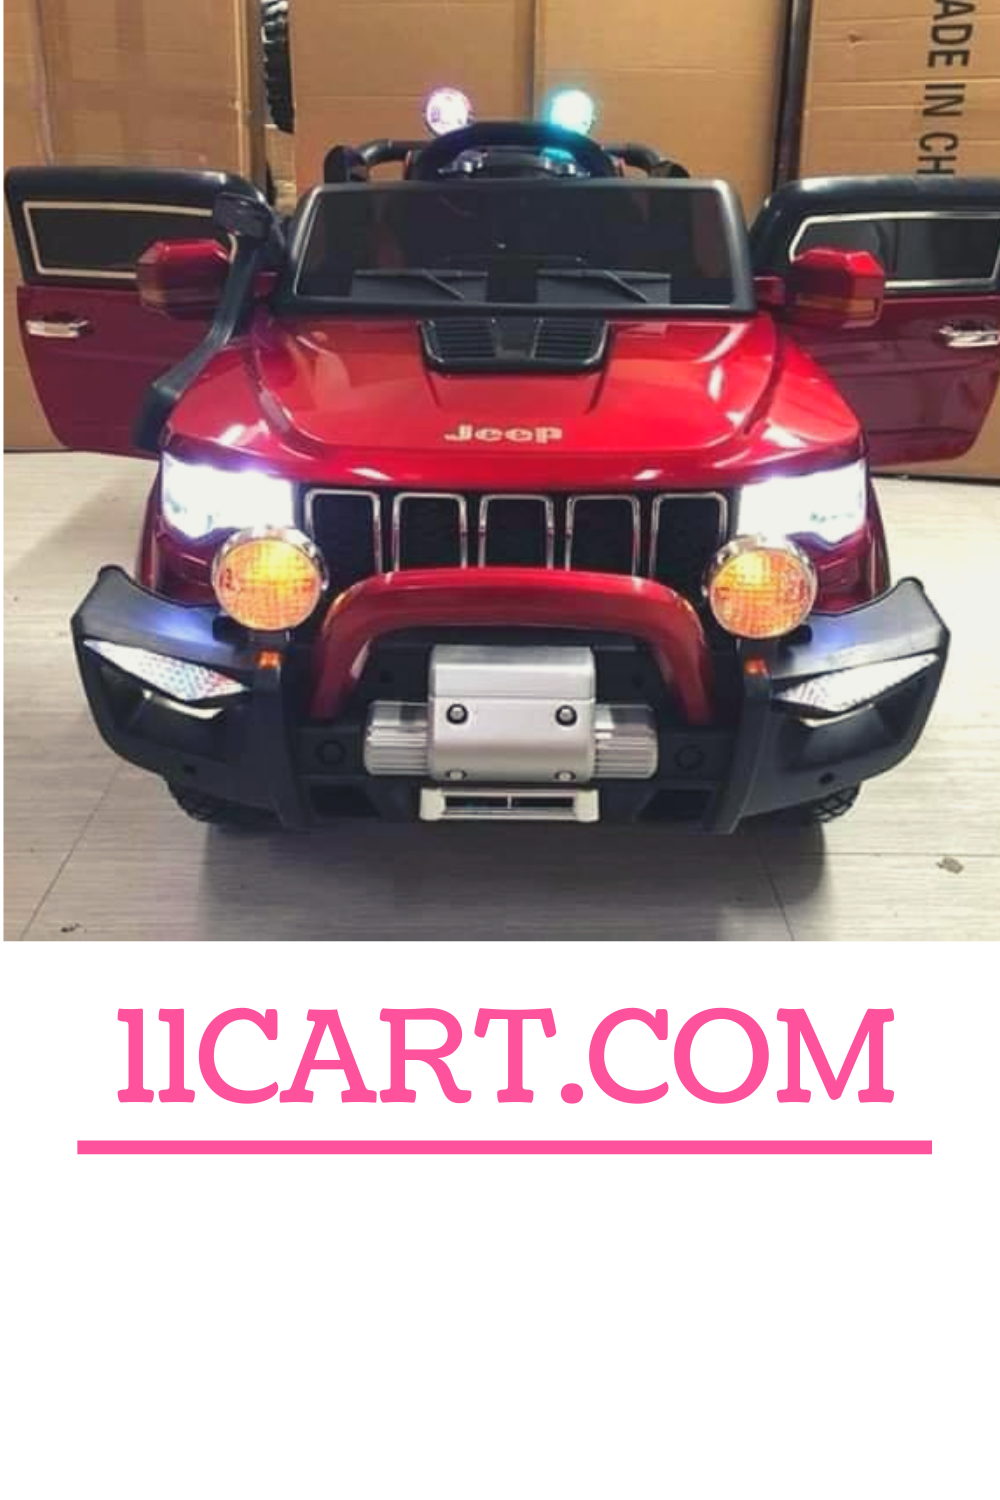 Kids Ride on Car At 11Cart.com Now Available in India Shop Now With Cash on Deleivery #kidscar #rideoncar #batteryoperatedcar #jumboJeep #Batterybike #kidsbike #kidsrideon #11Cart #childrencar #batterycar #Electriccar #followus